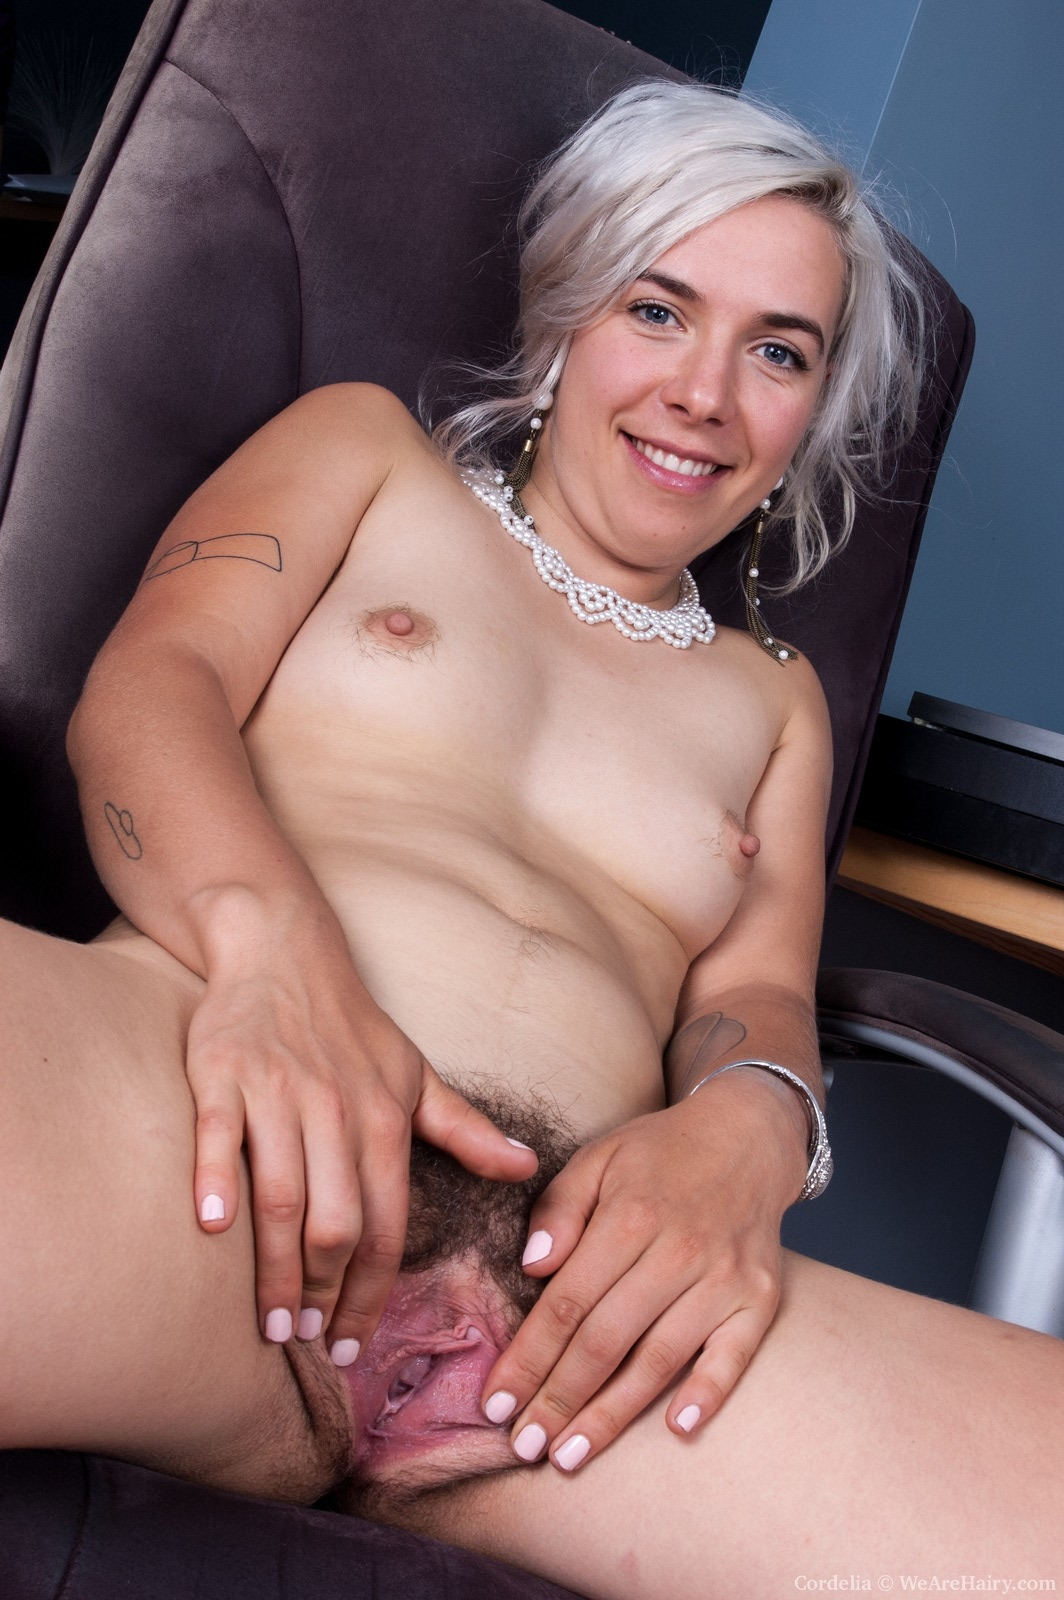 Girls show hairy pussy